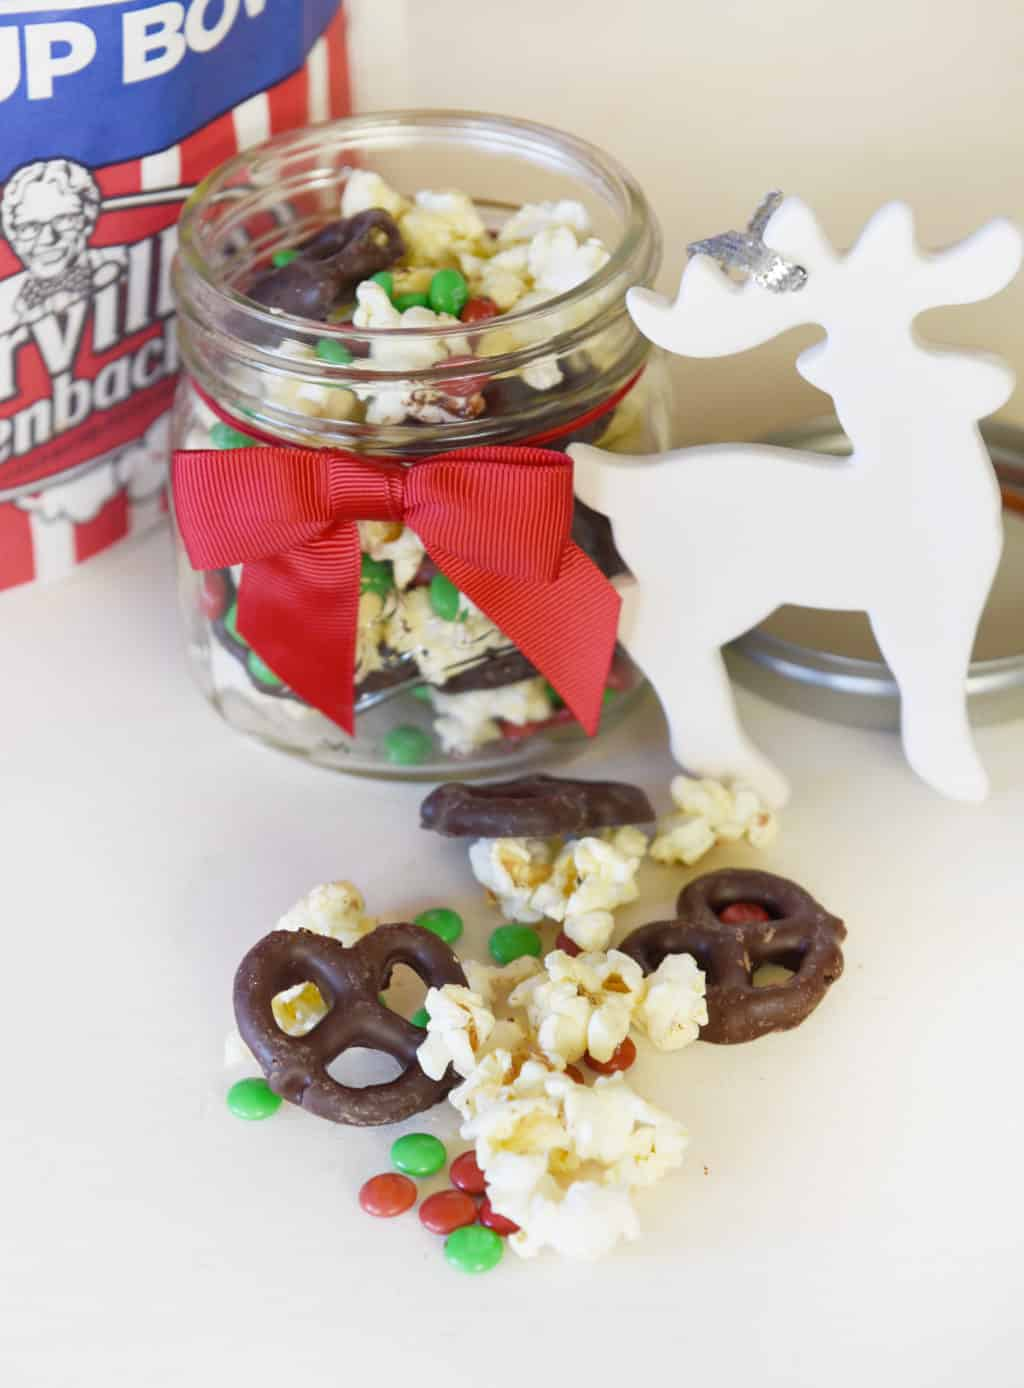 Reindeer Snack Mix! So cute and delicious! Perfect for gift giving in a jar.